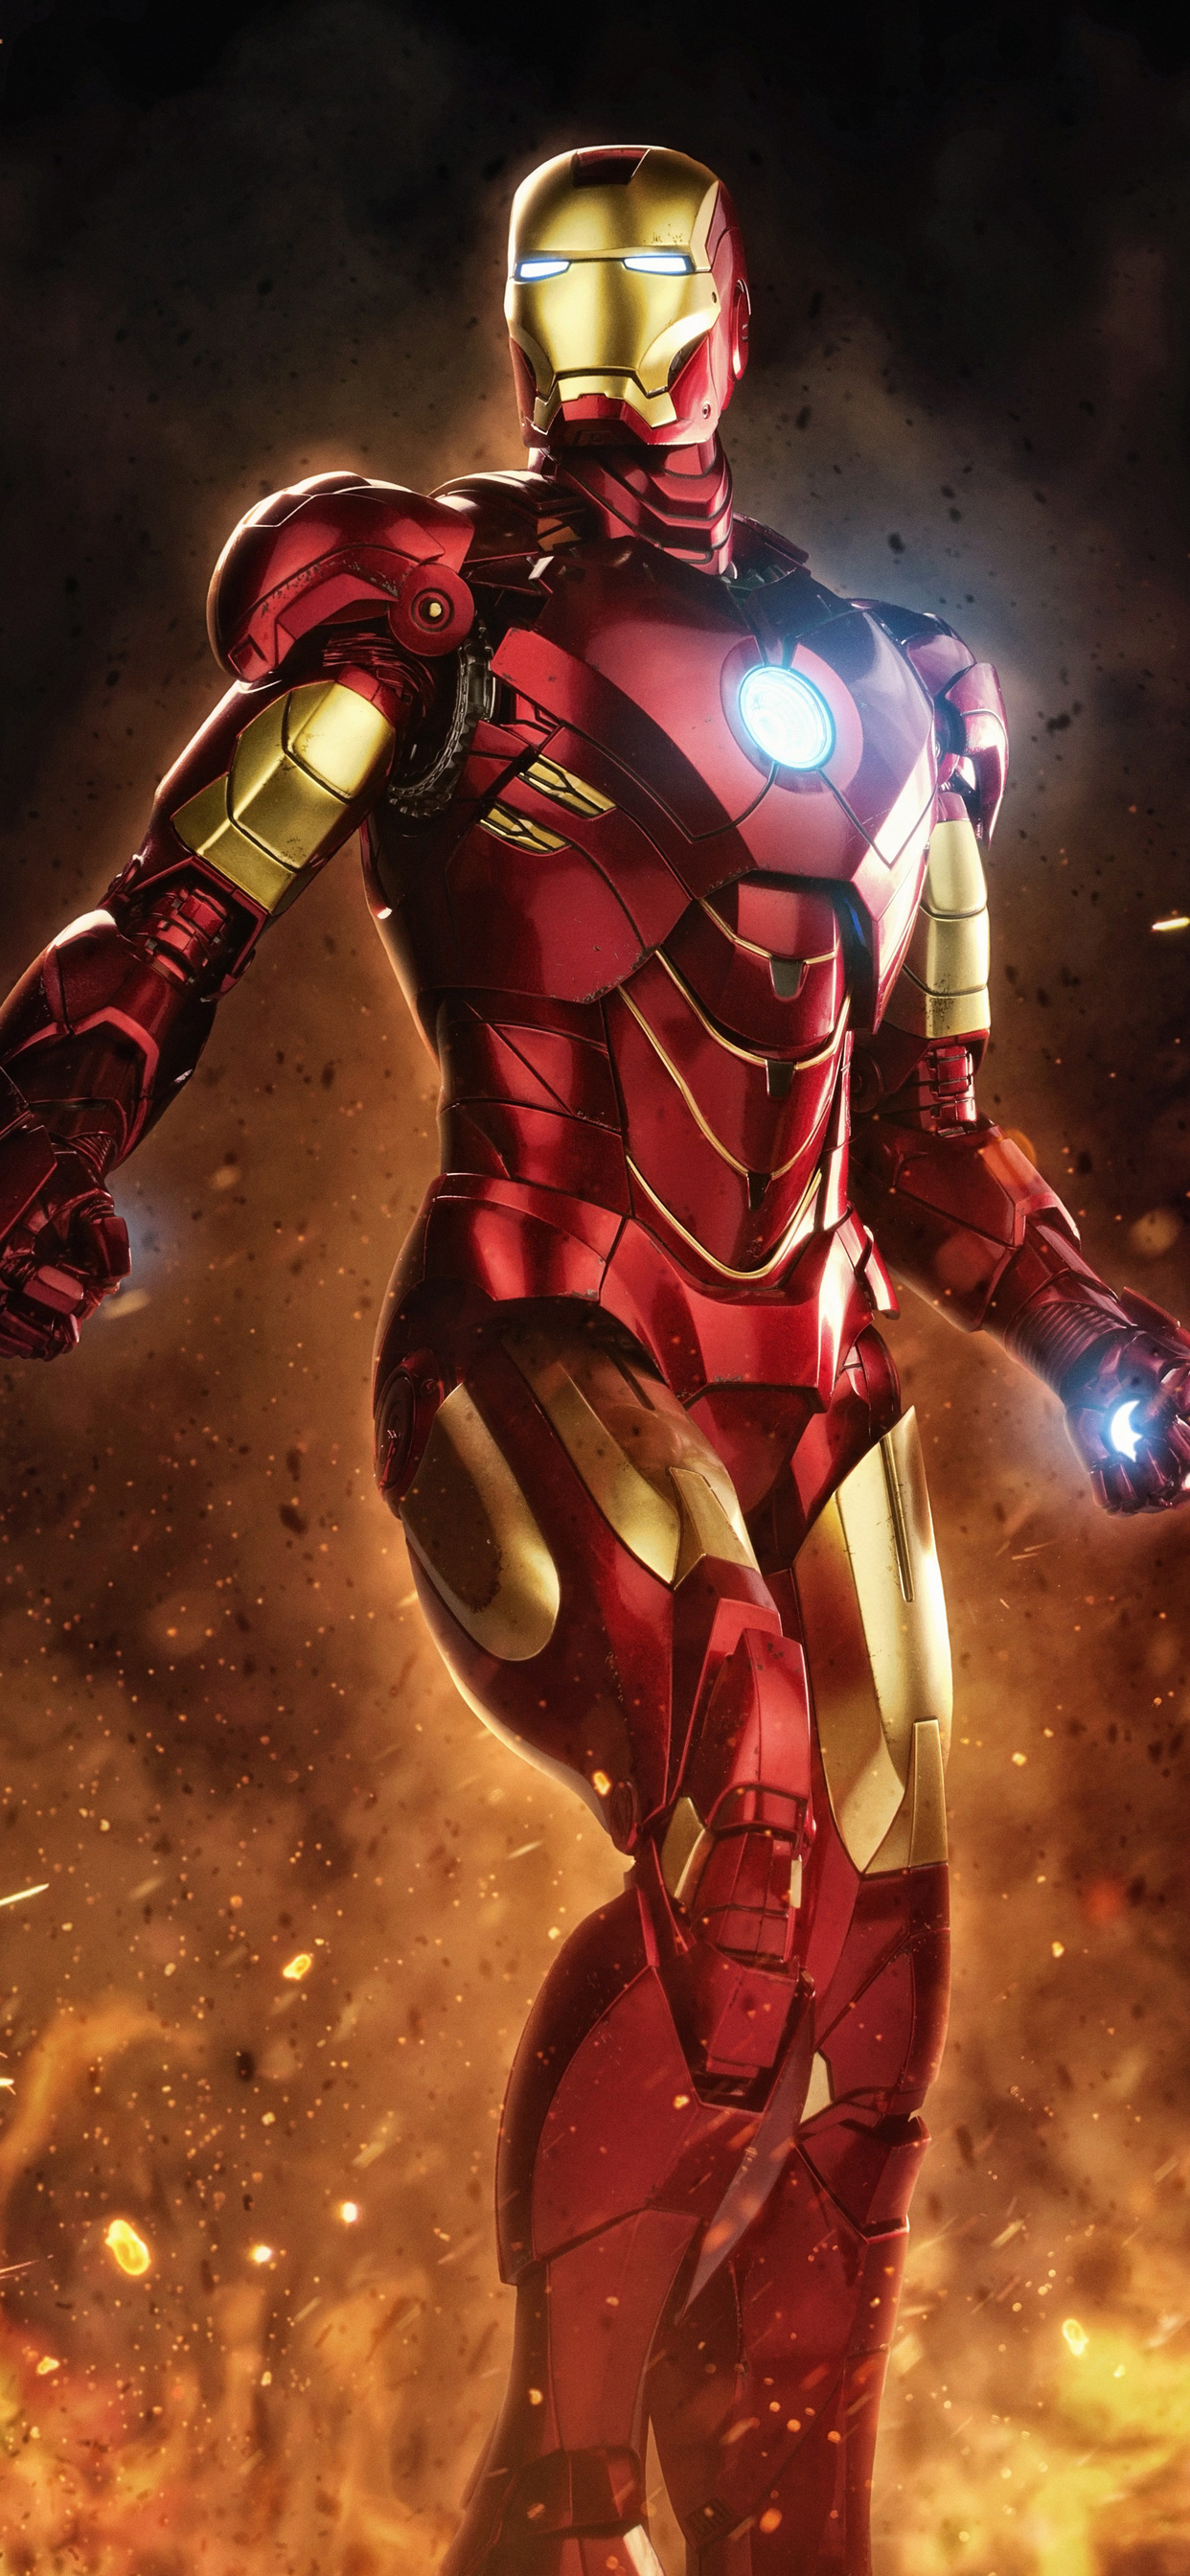 1242x2688 4k Iron Man 2018 Iphone Xs Max Hd 4k Wallpapers Images